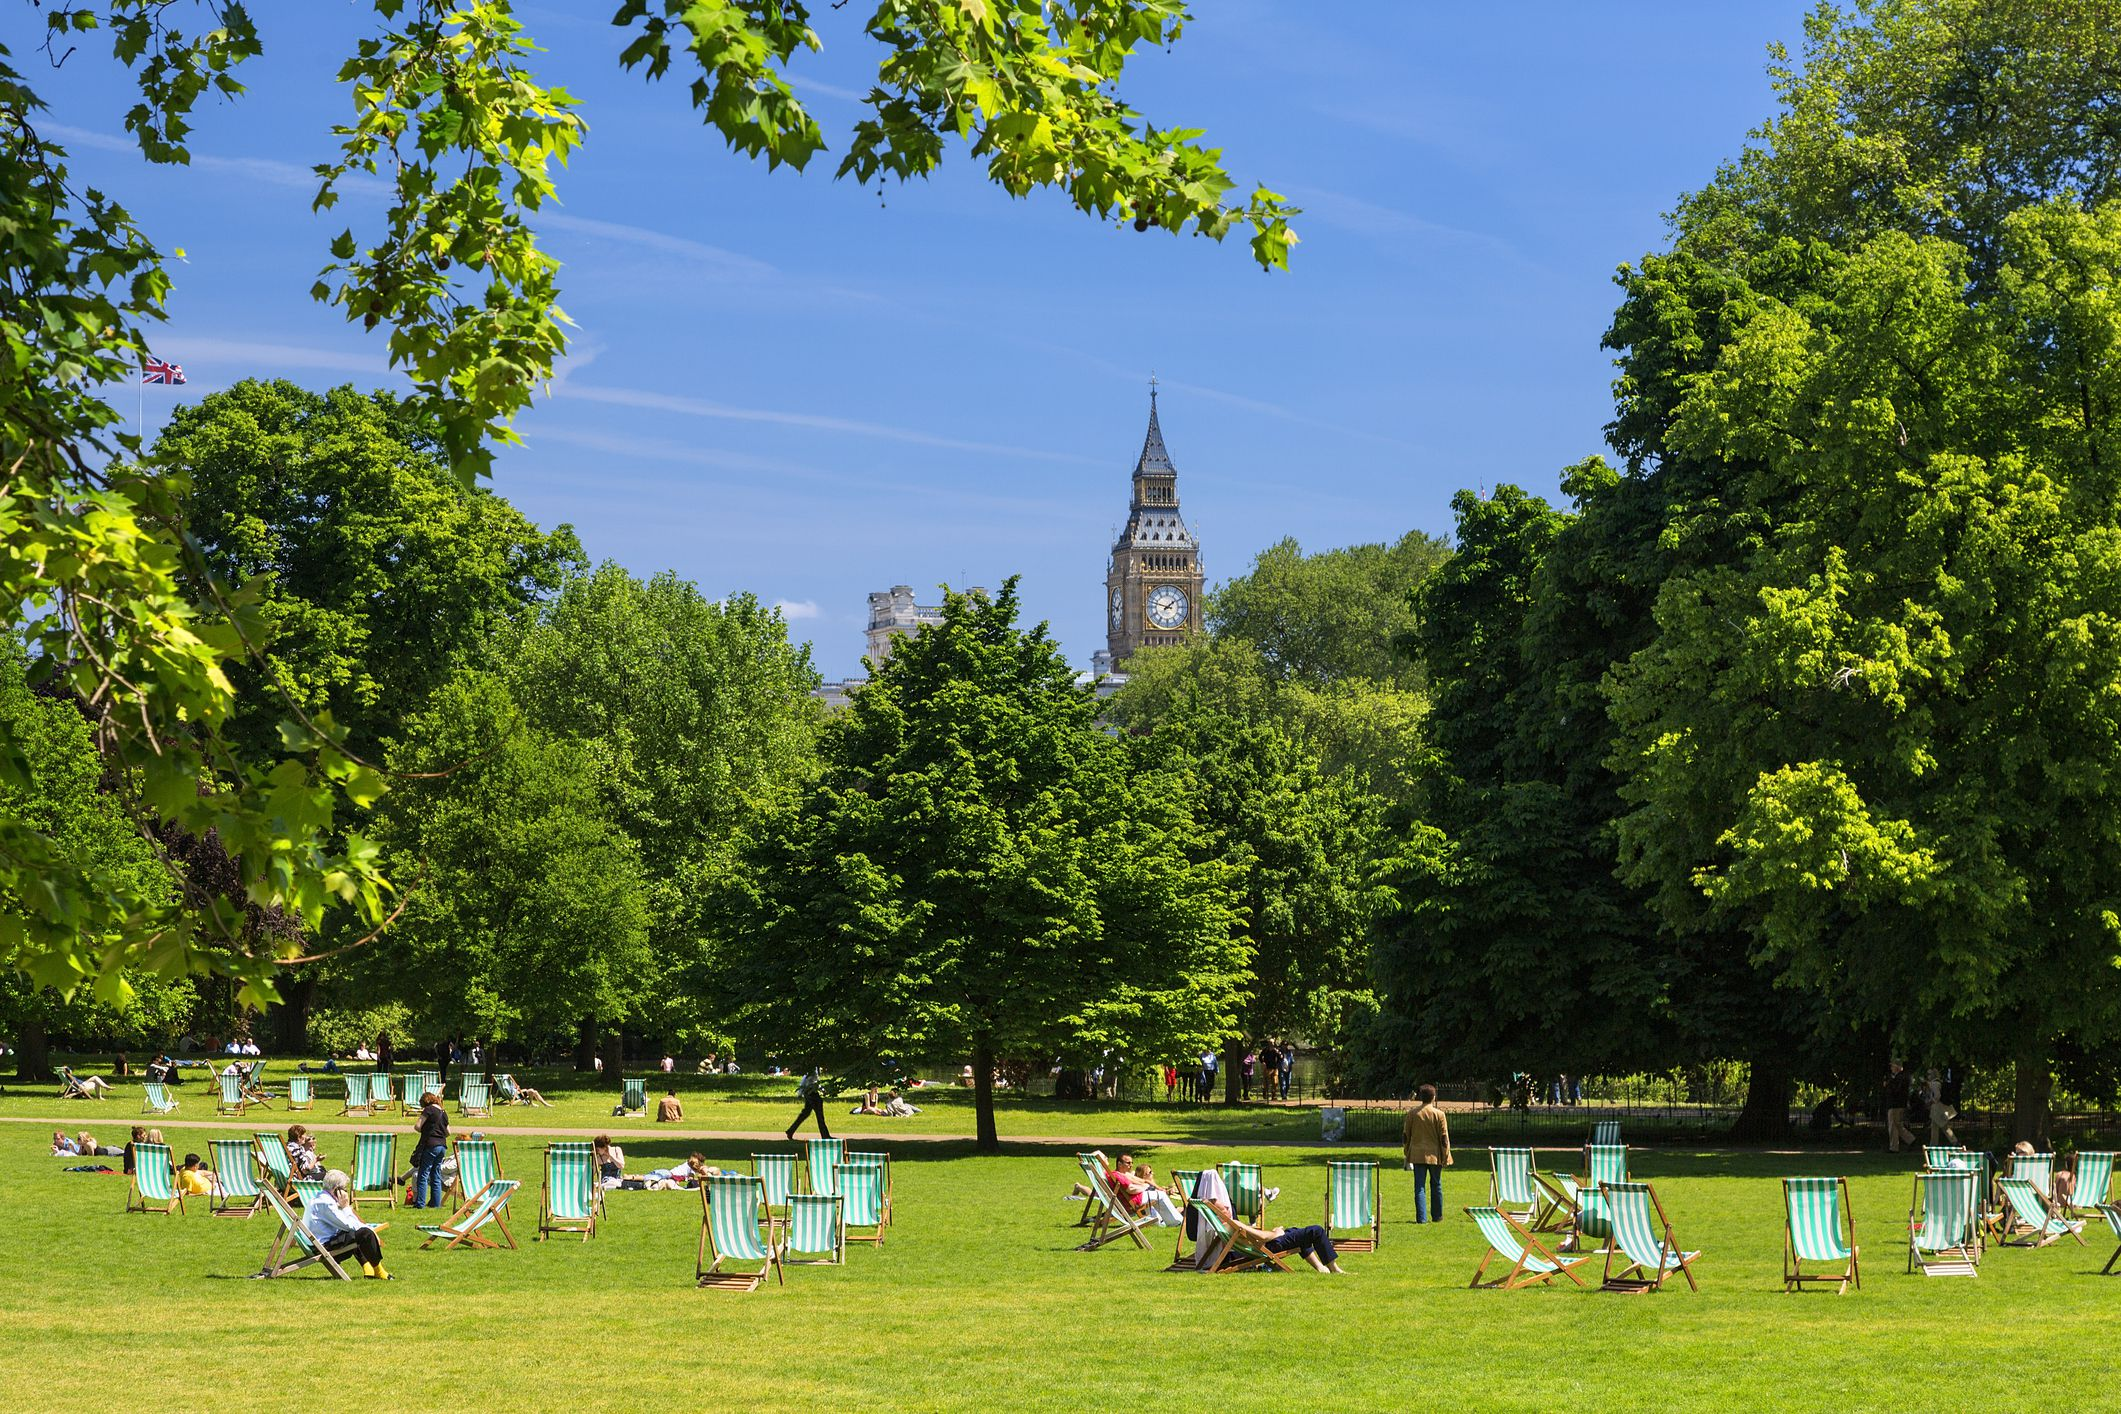 Lawn chairs on the grass in London's St. James's Park